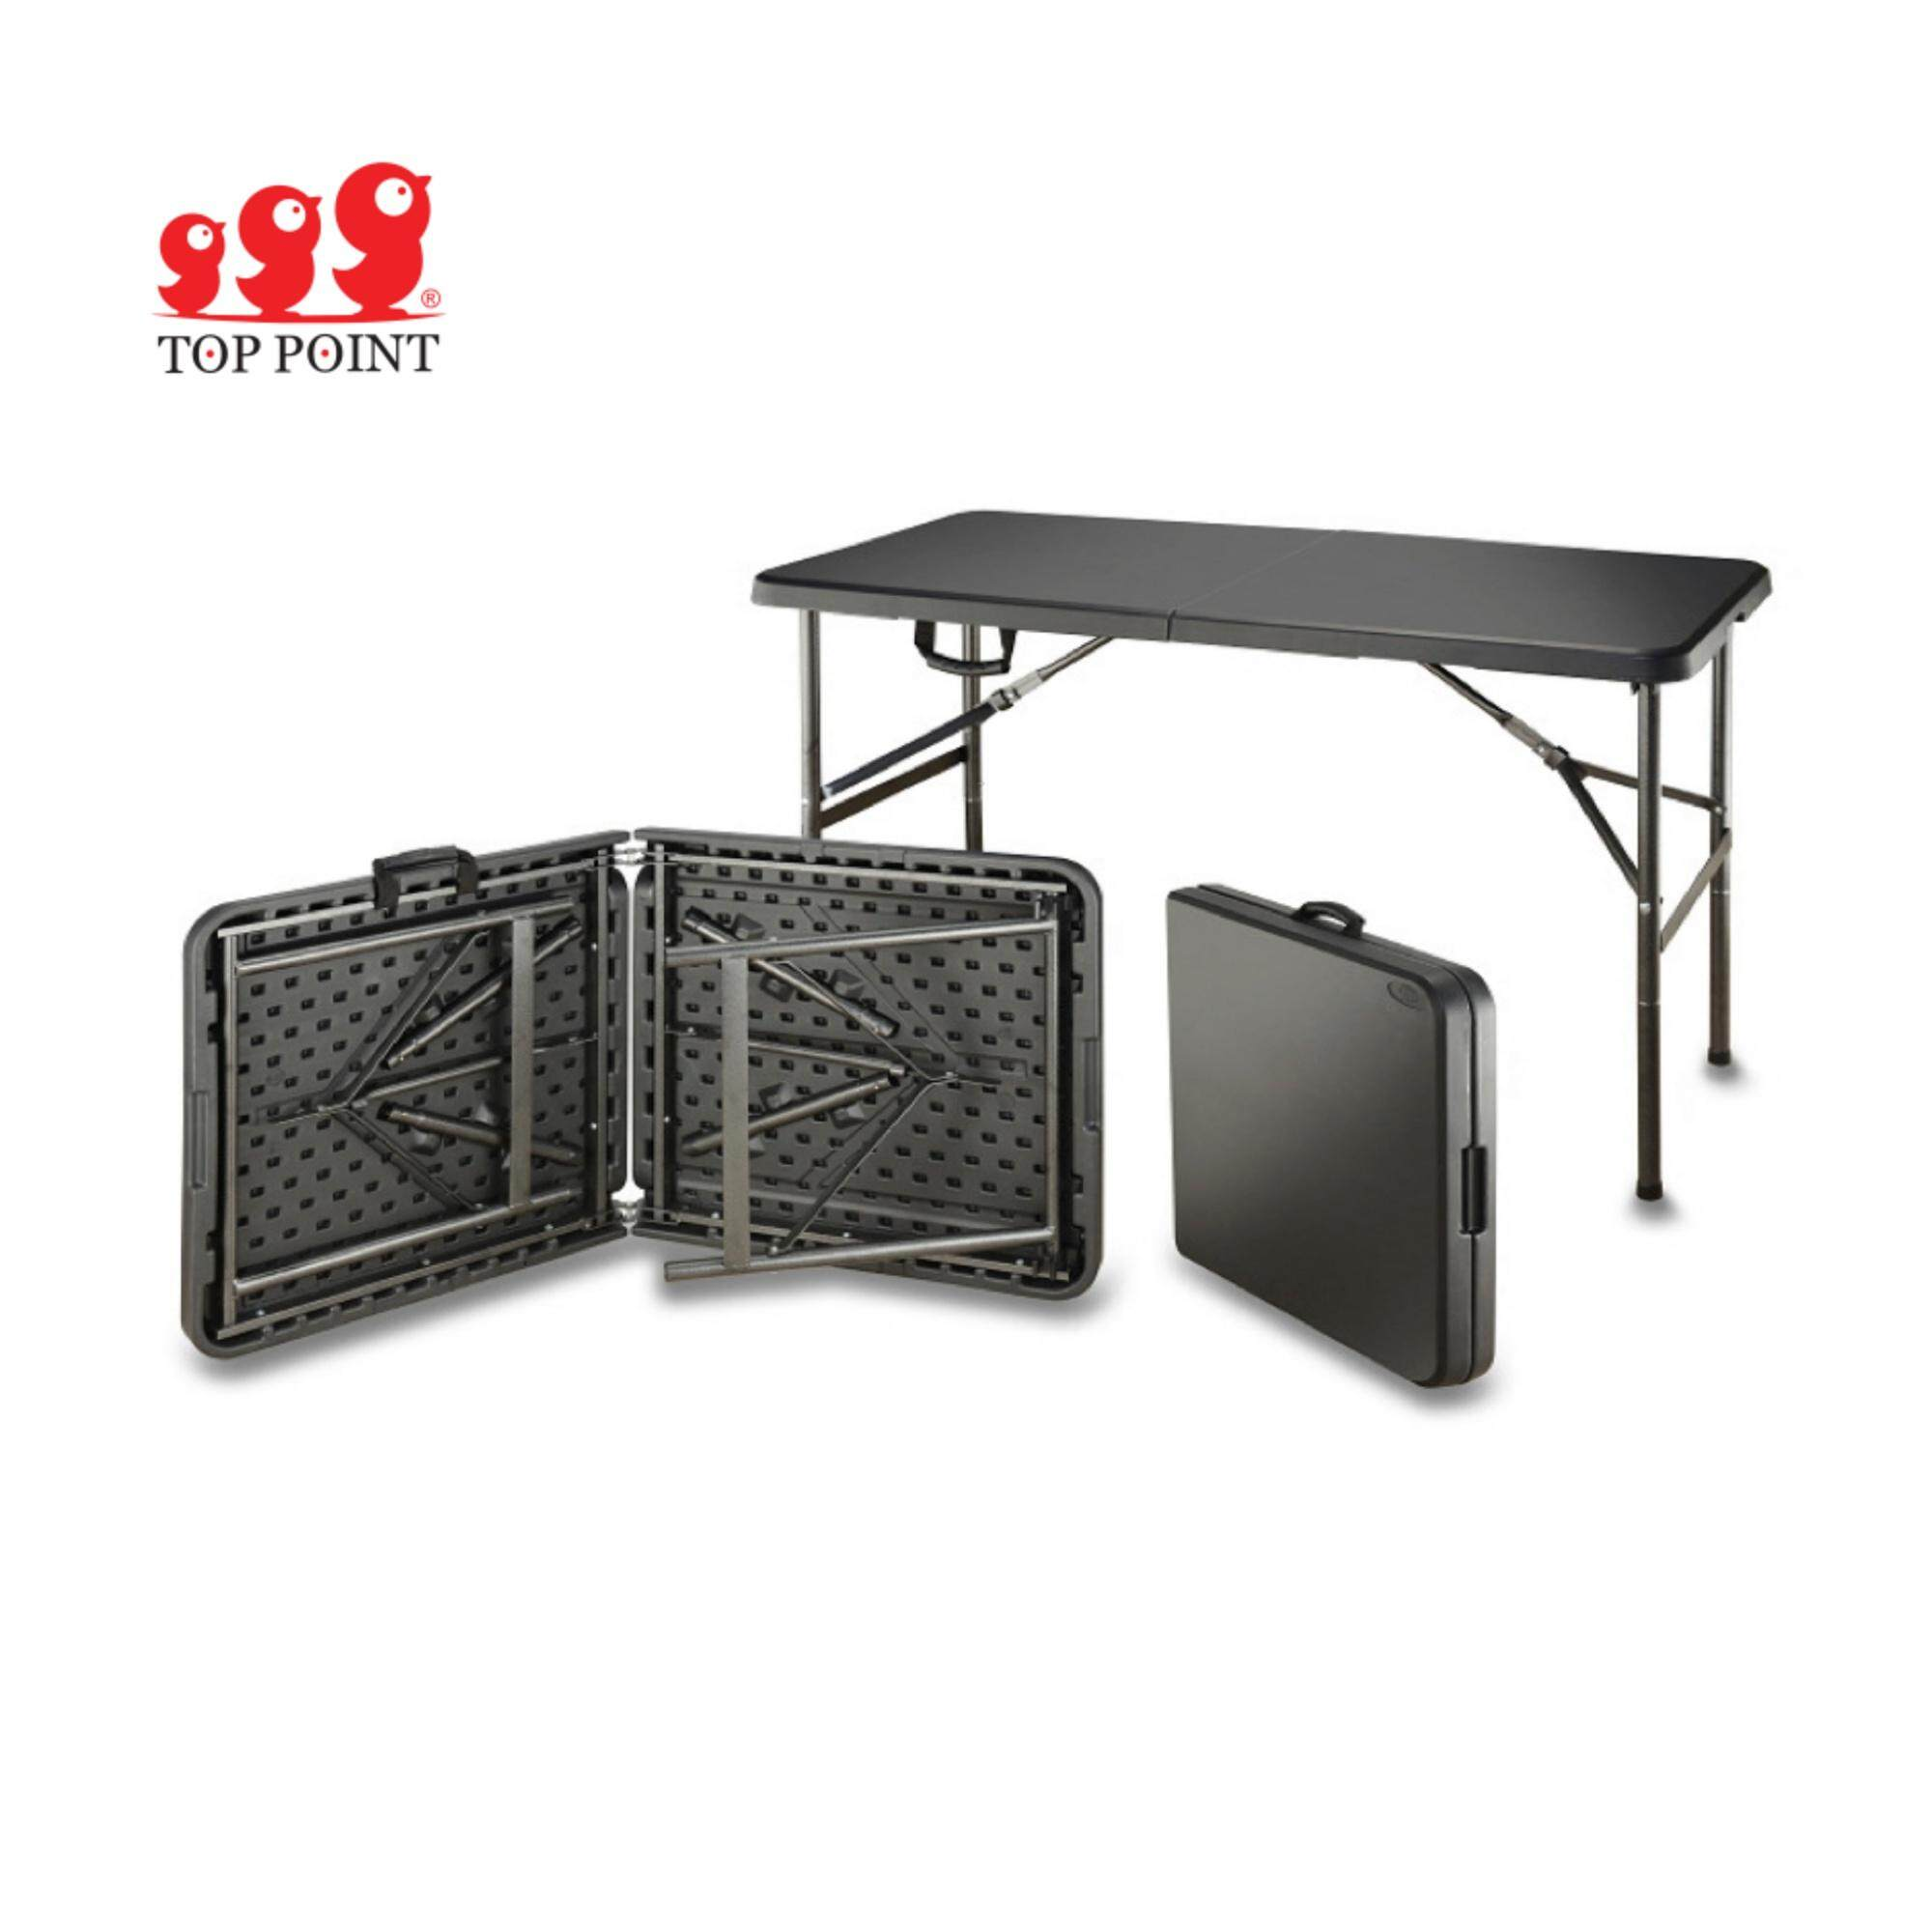 Top Point Multifunctional And Portable 2 Way Folding Table (grey Color) By Lccs Store.